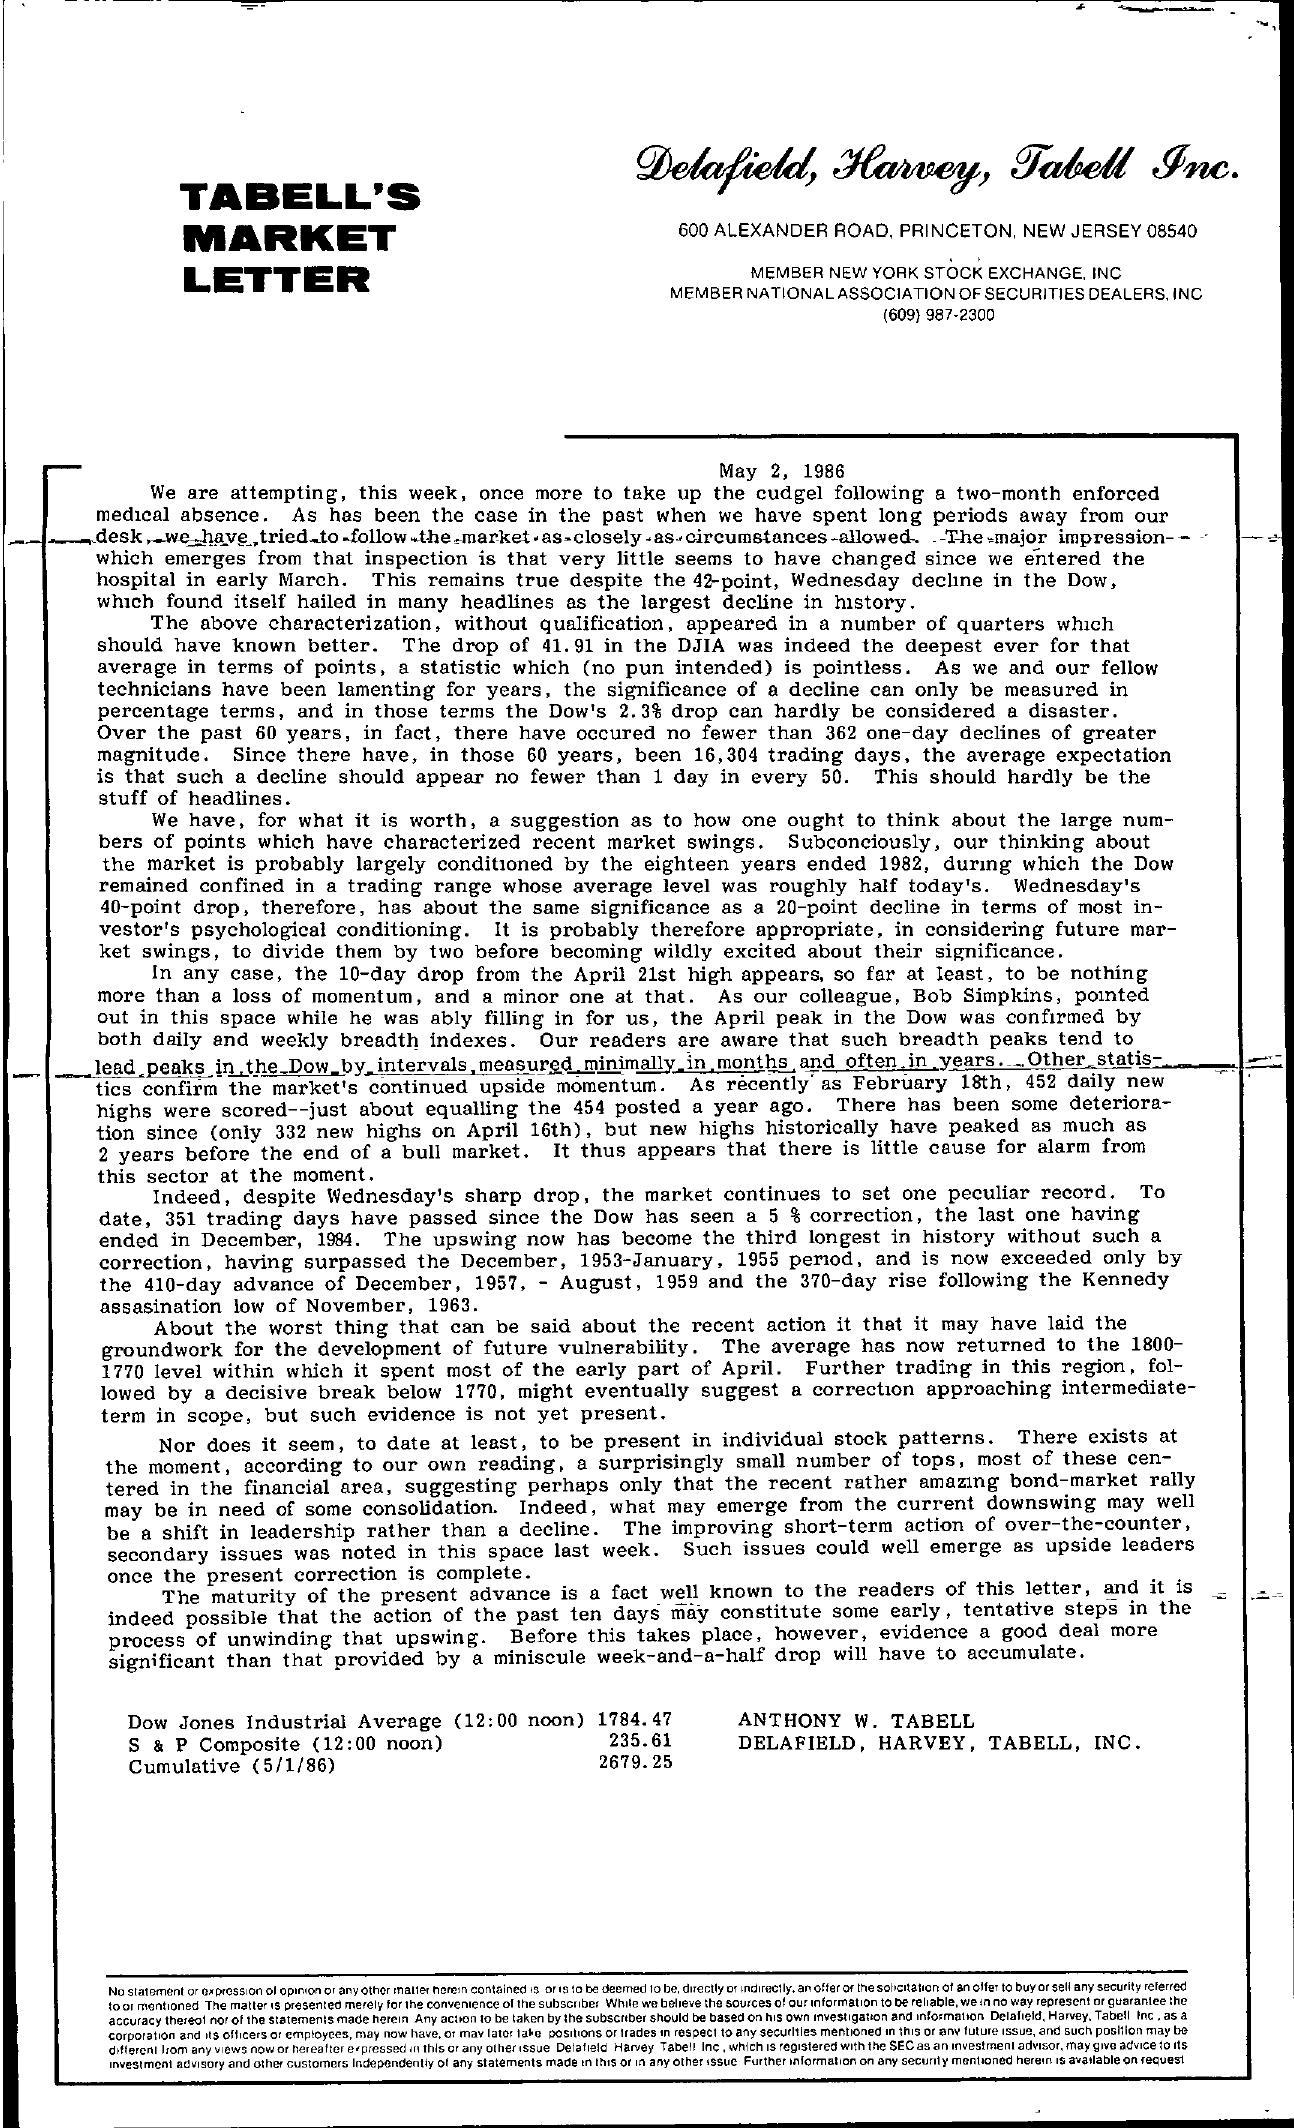 Tabell's Market Letter - May 02, 1986